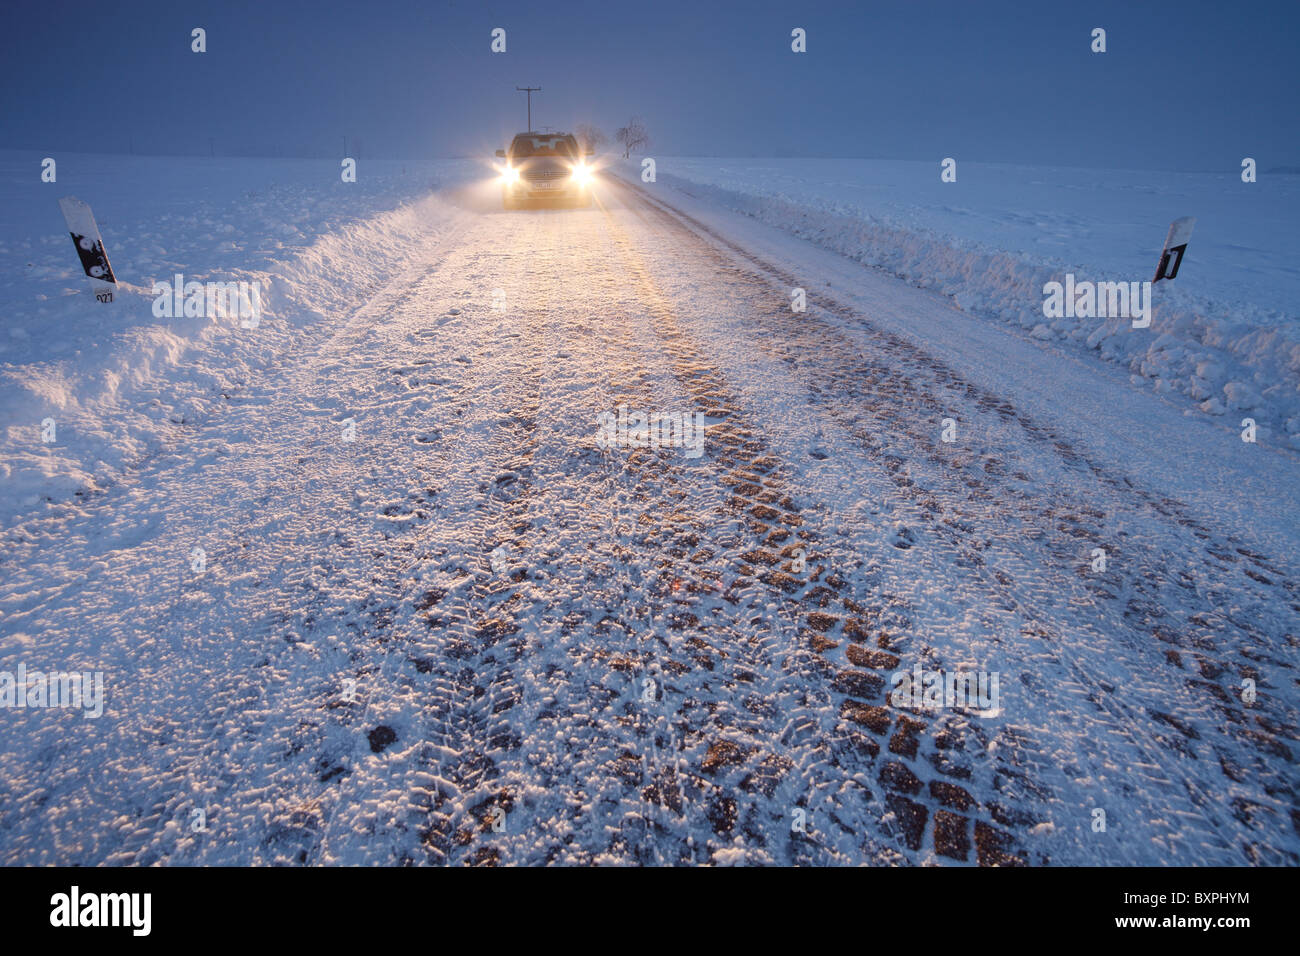 car (Toyota Avensis) on a snow-covered country road near Halle (Saale), Germany - Stock Image